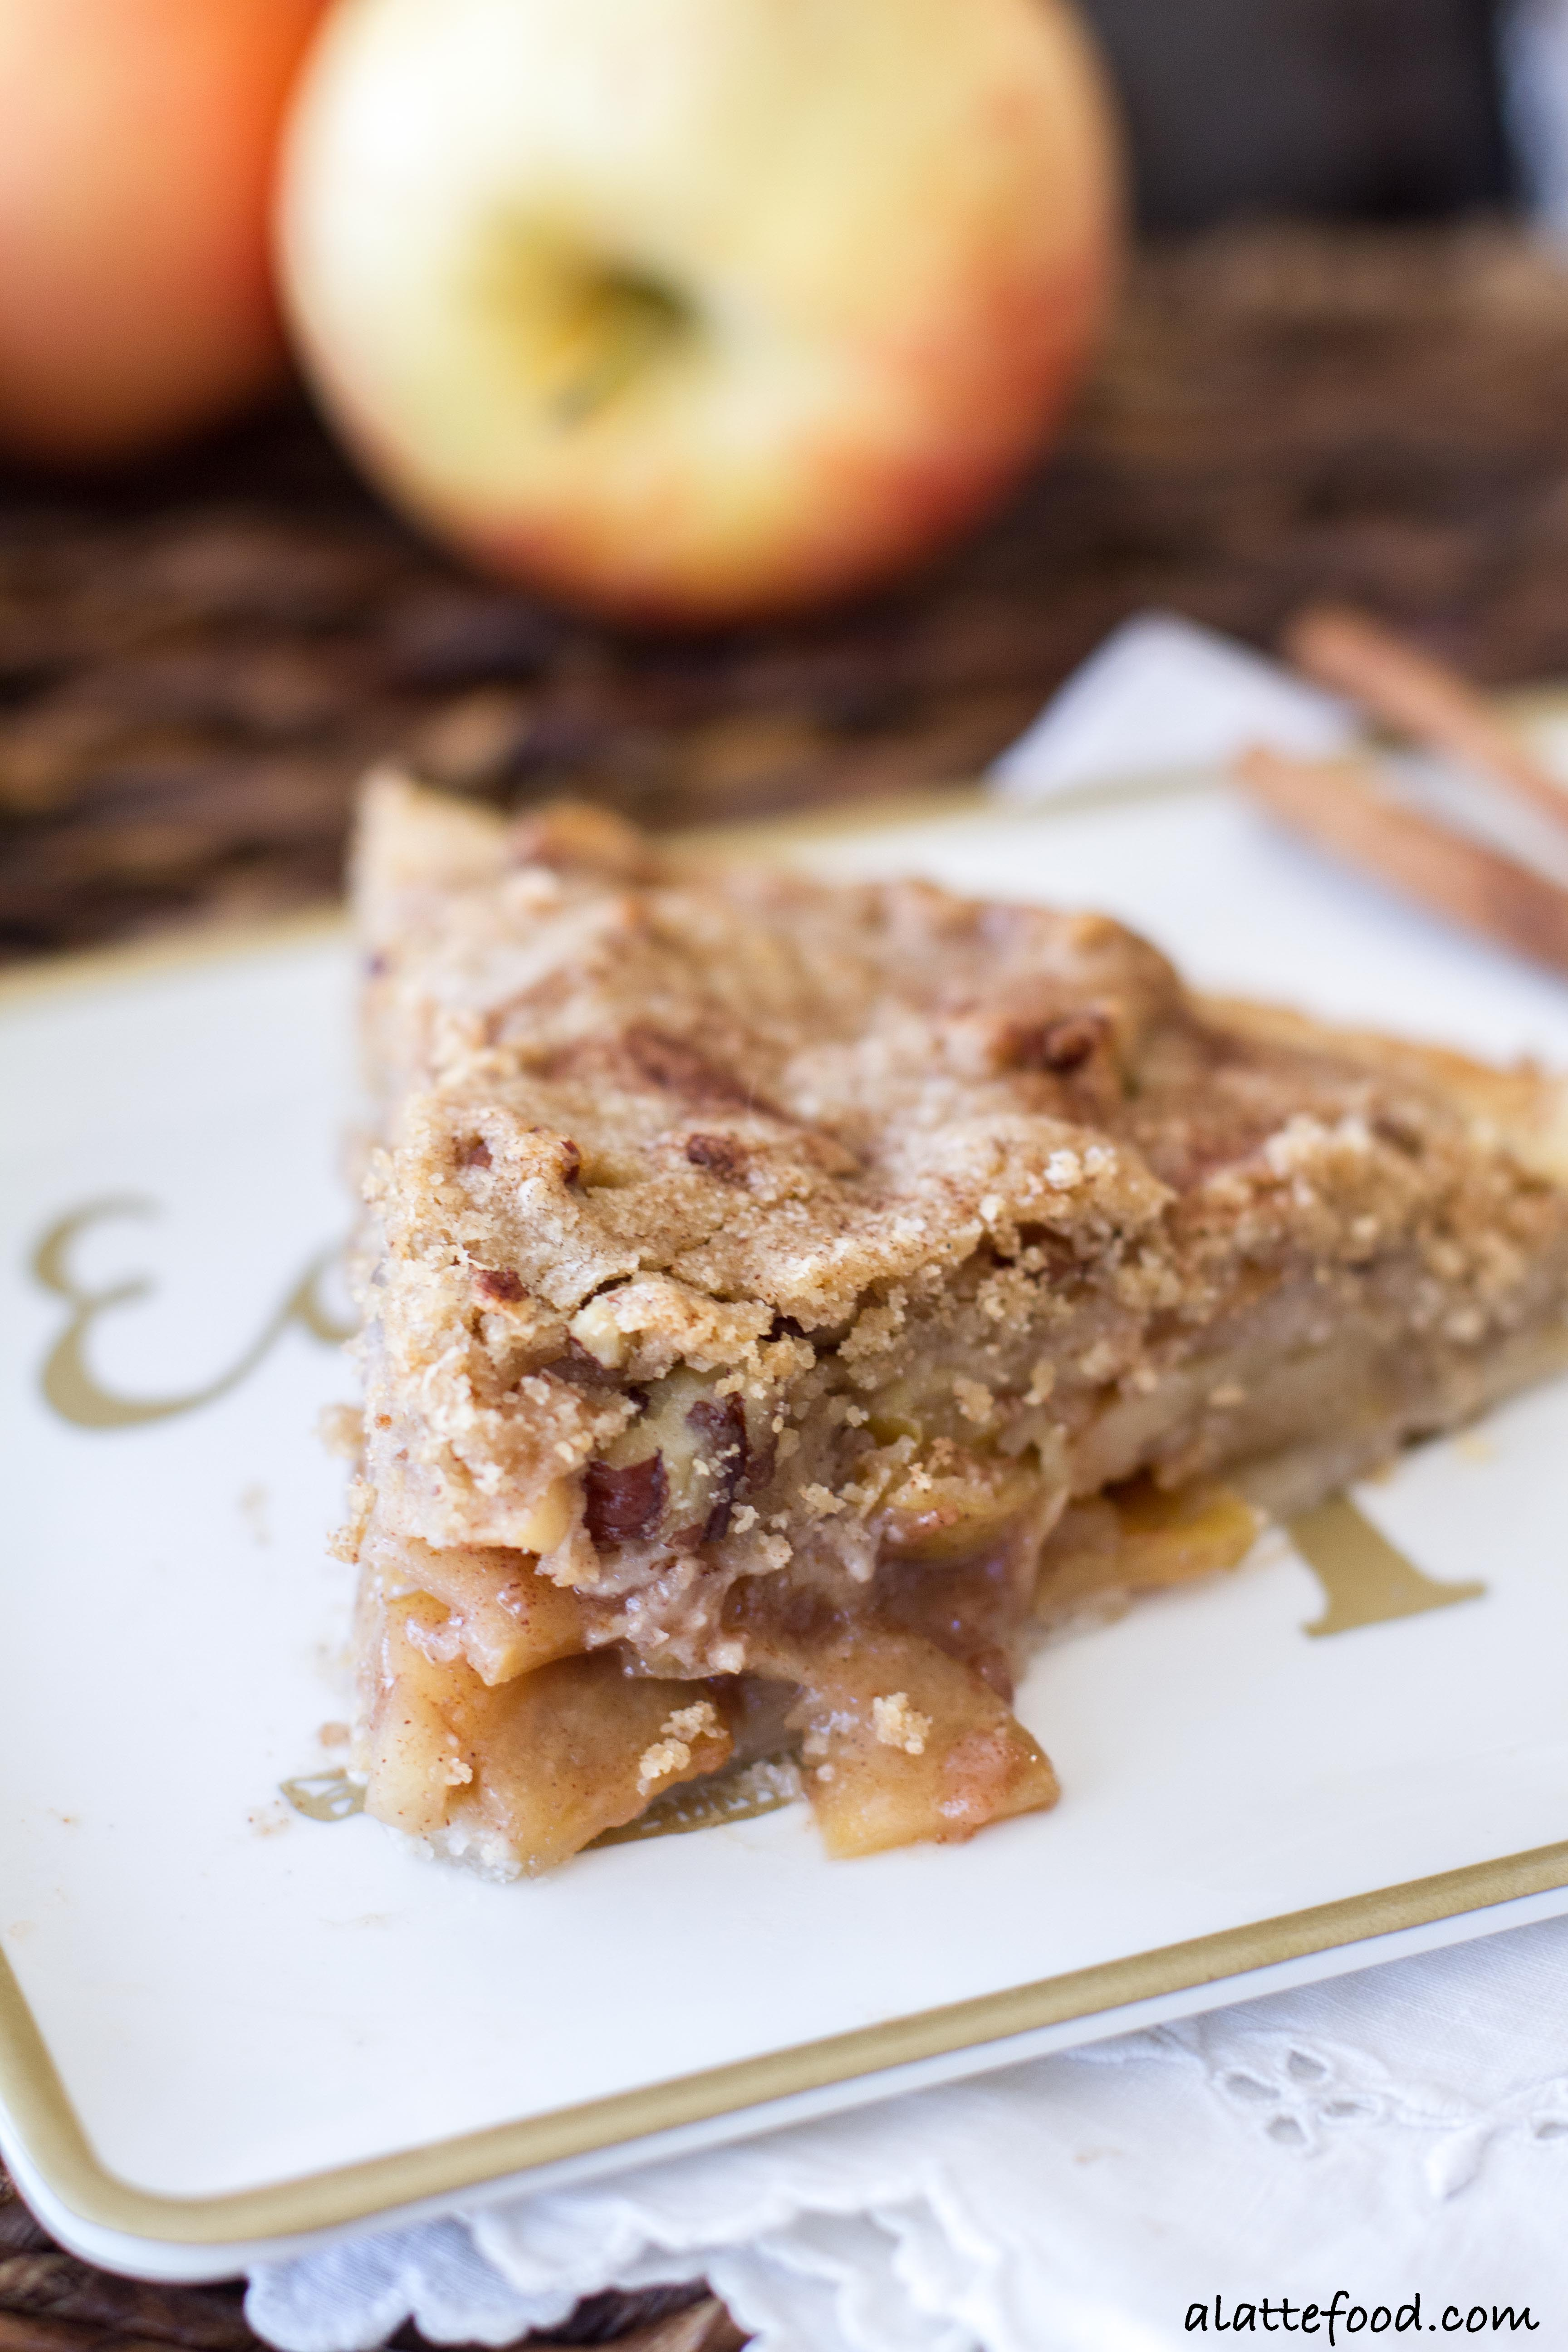 Watch Rustic Apple Pie video